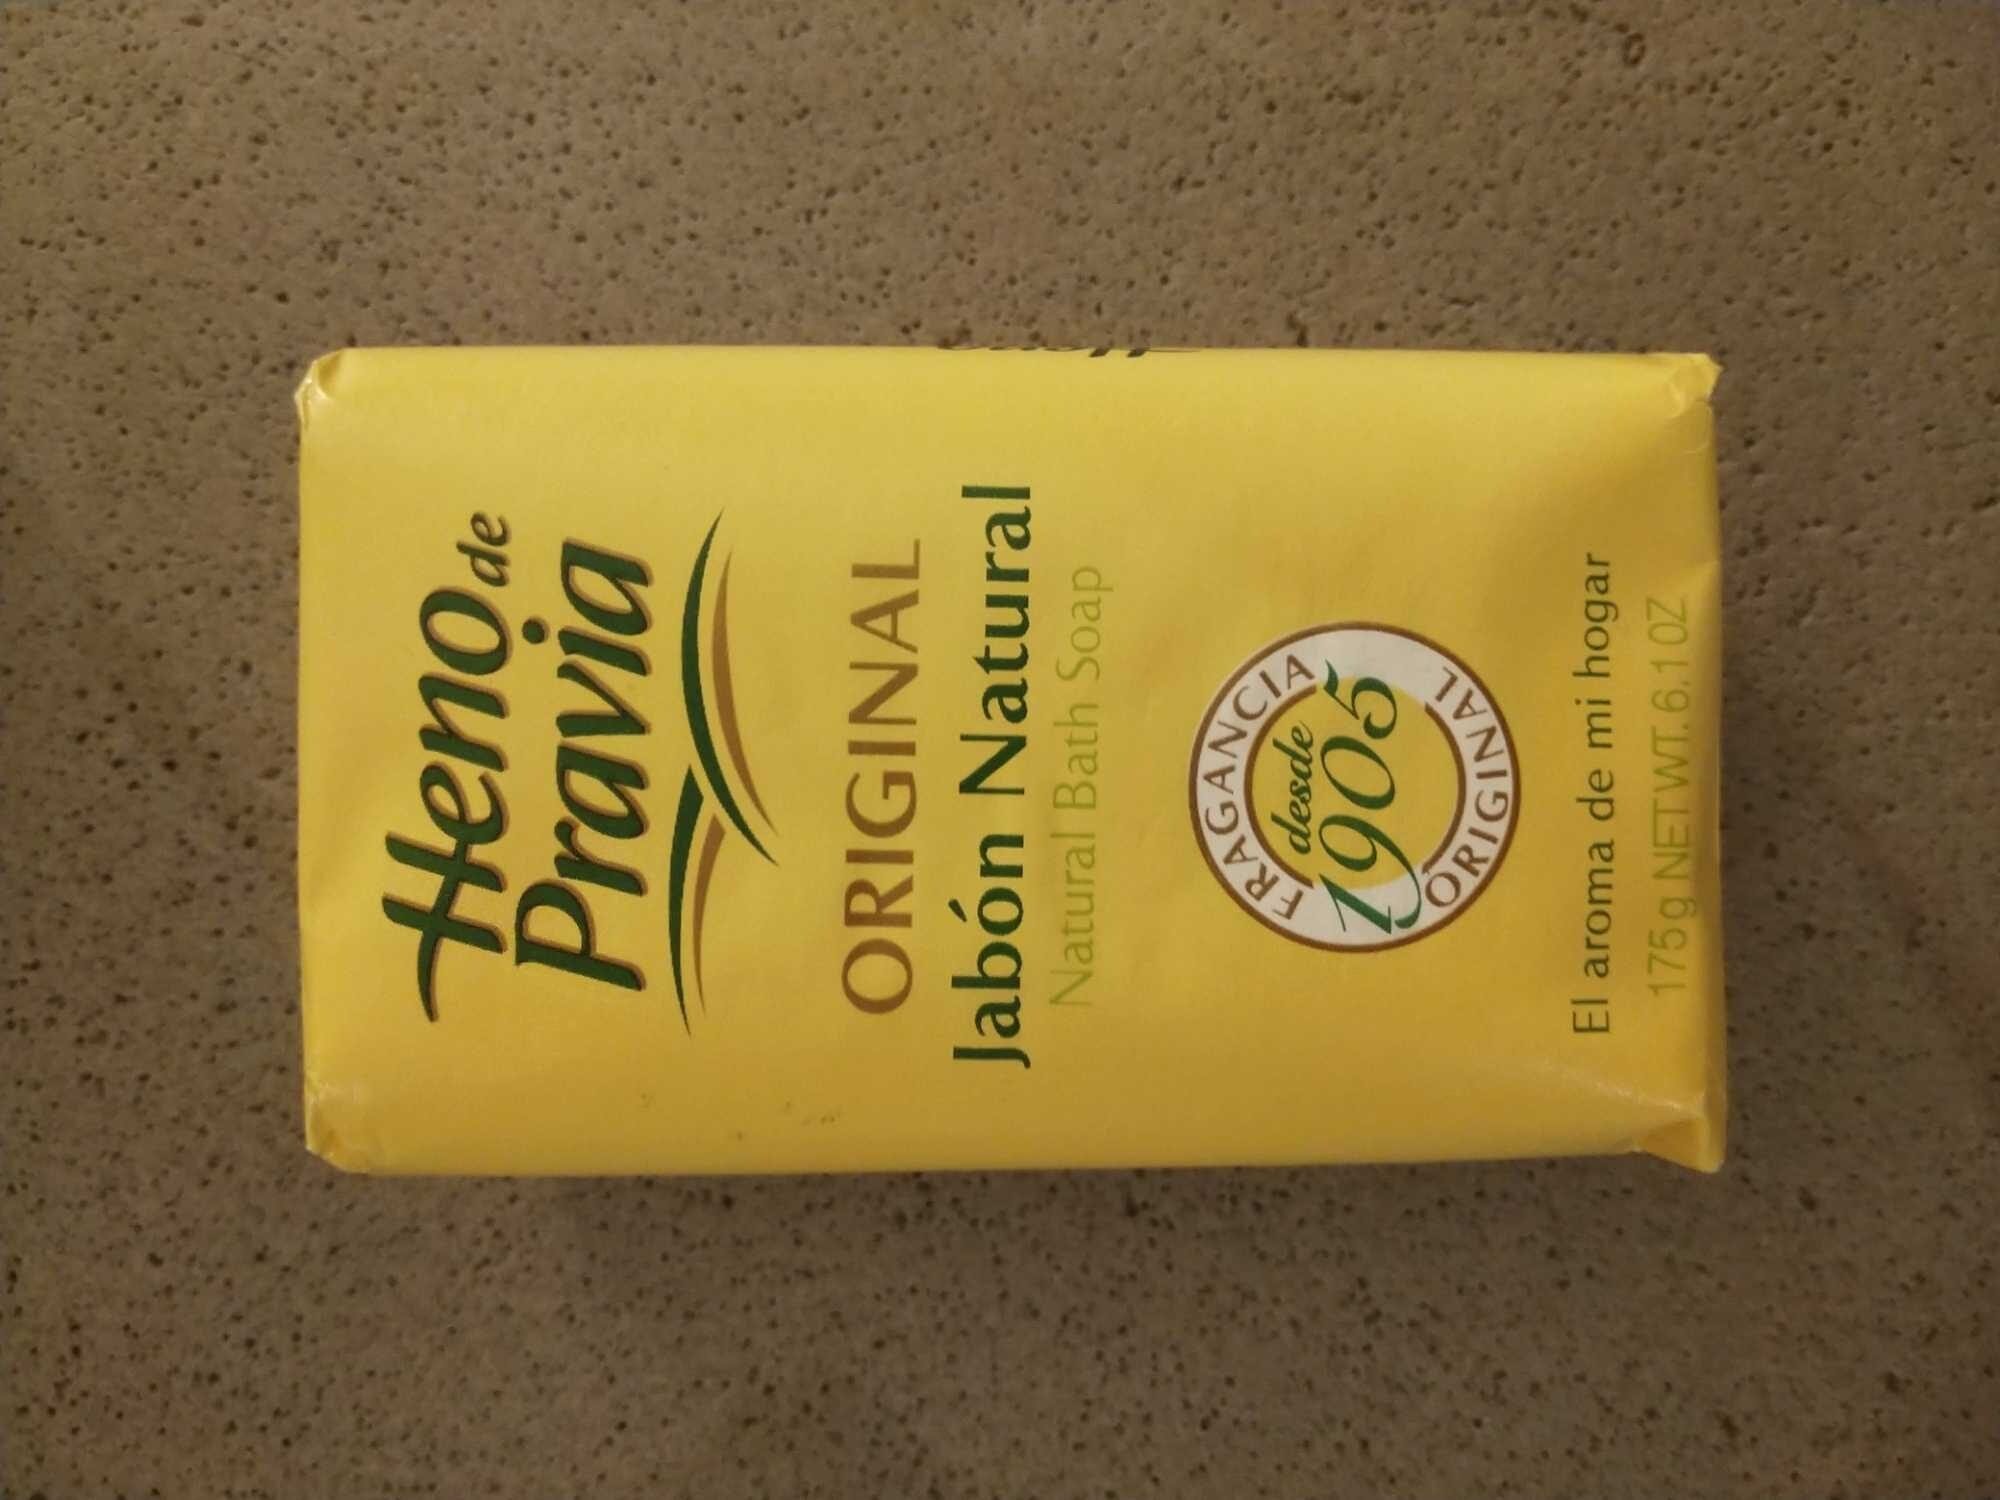 Original Jabón Natural - Product